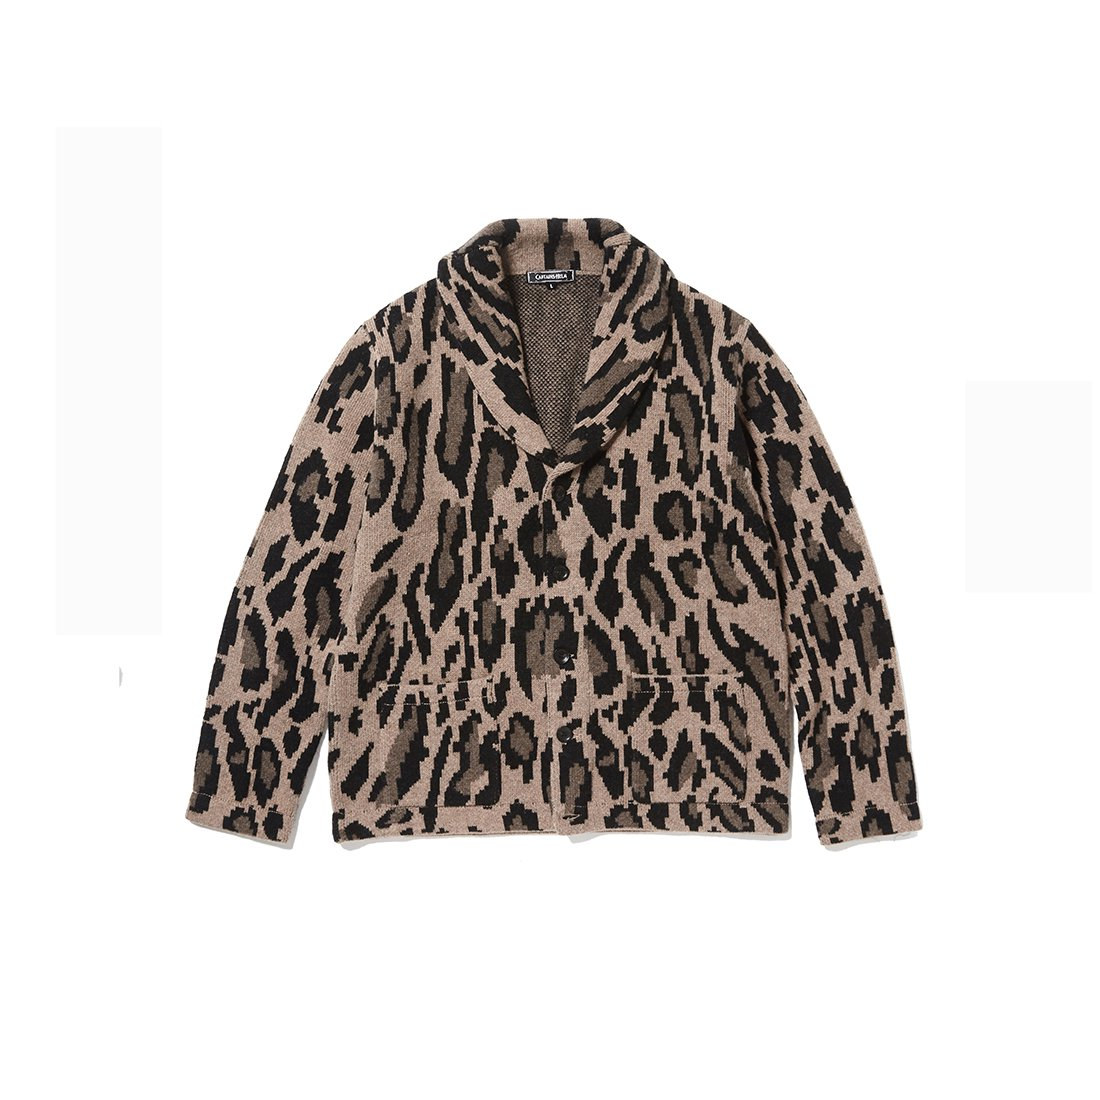 CAPTAINS HELM #LEOPARD CARDIGAN